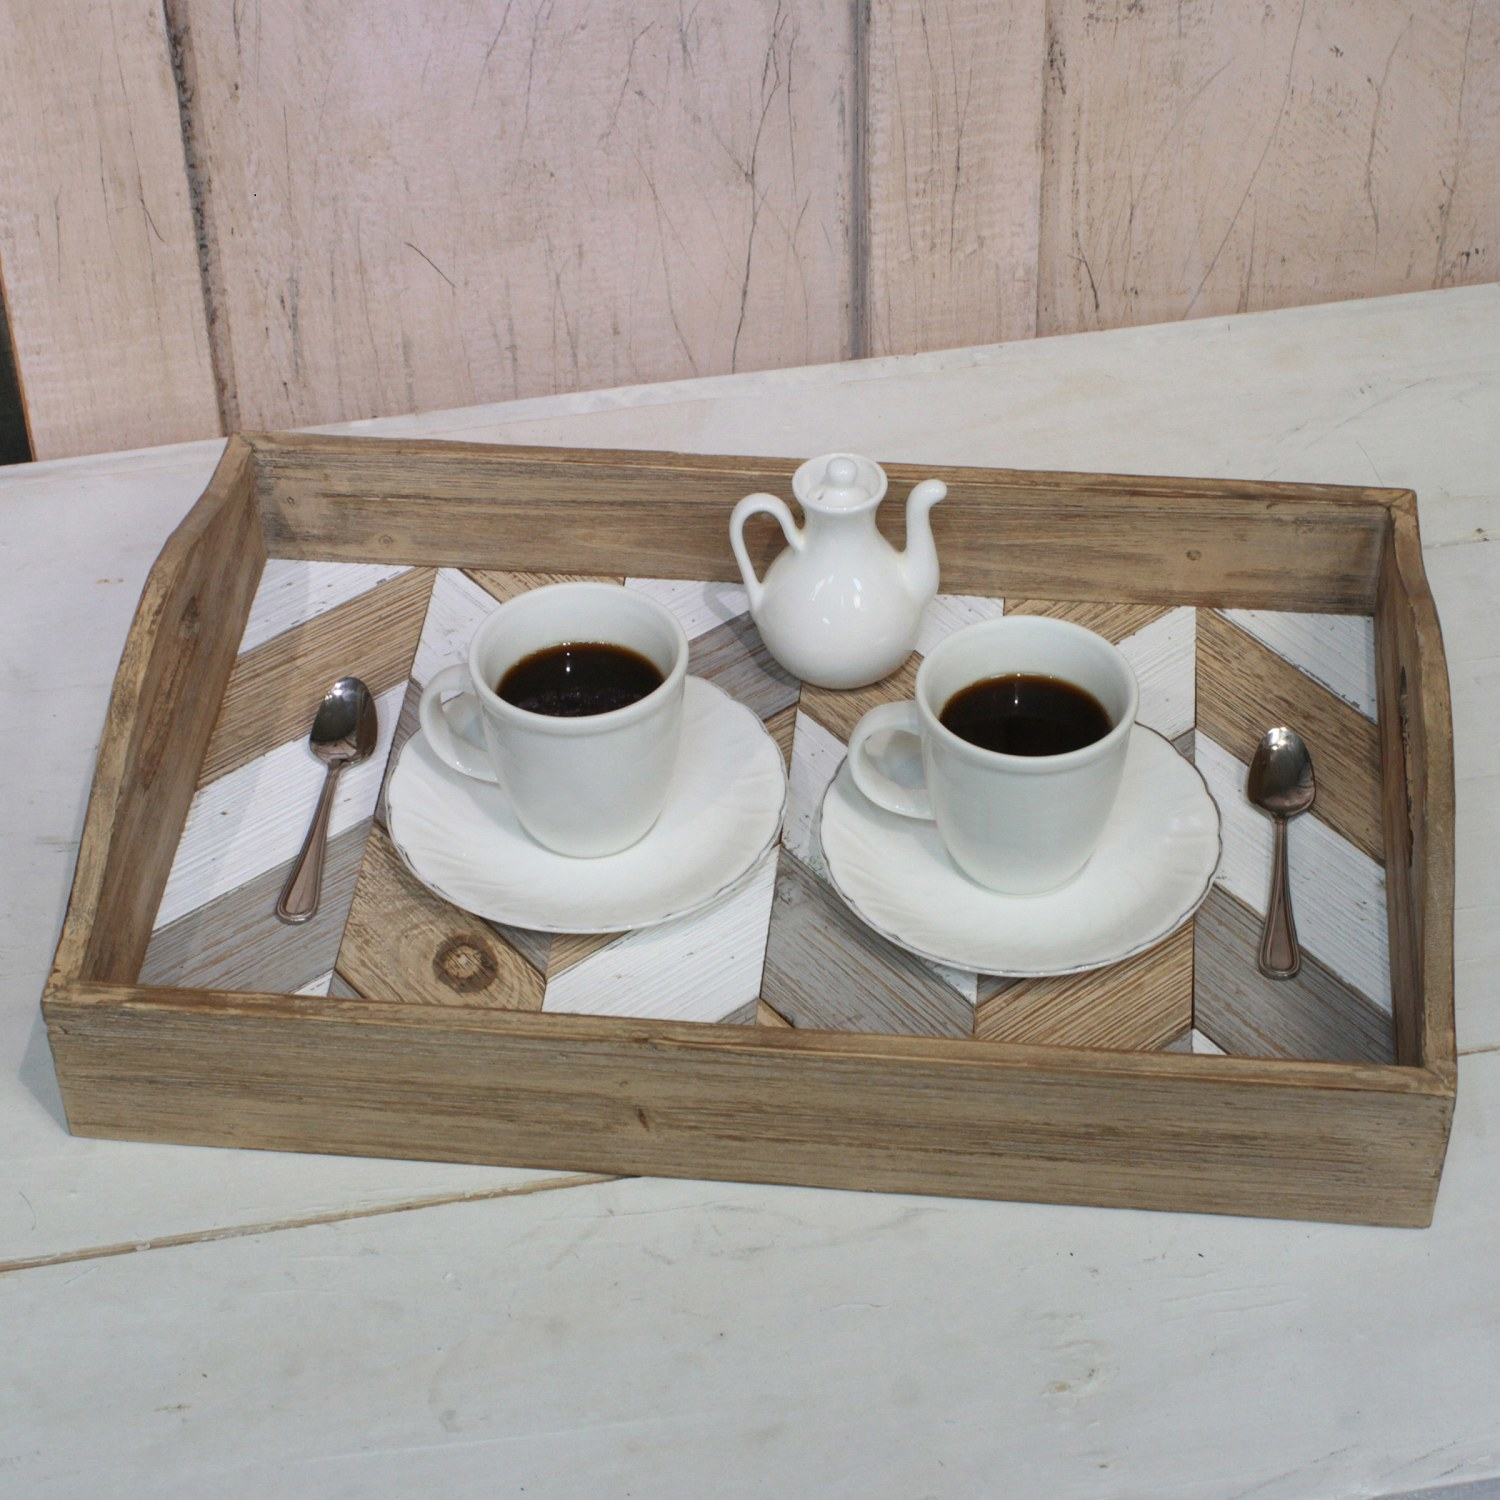 The tray with a coffee setup inside